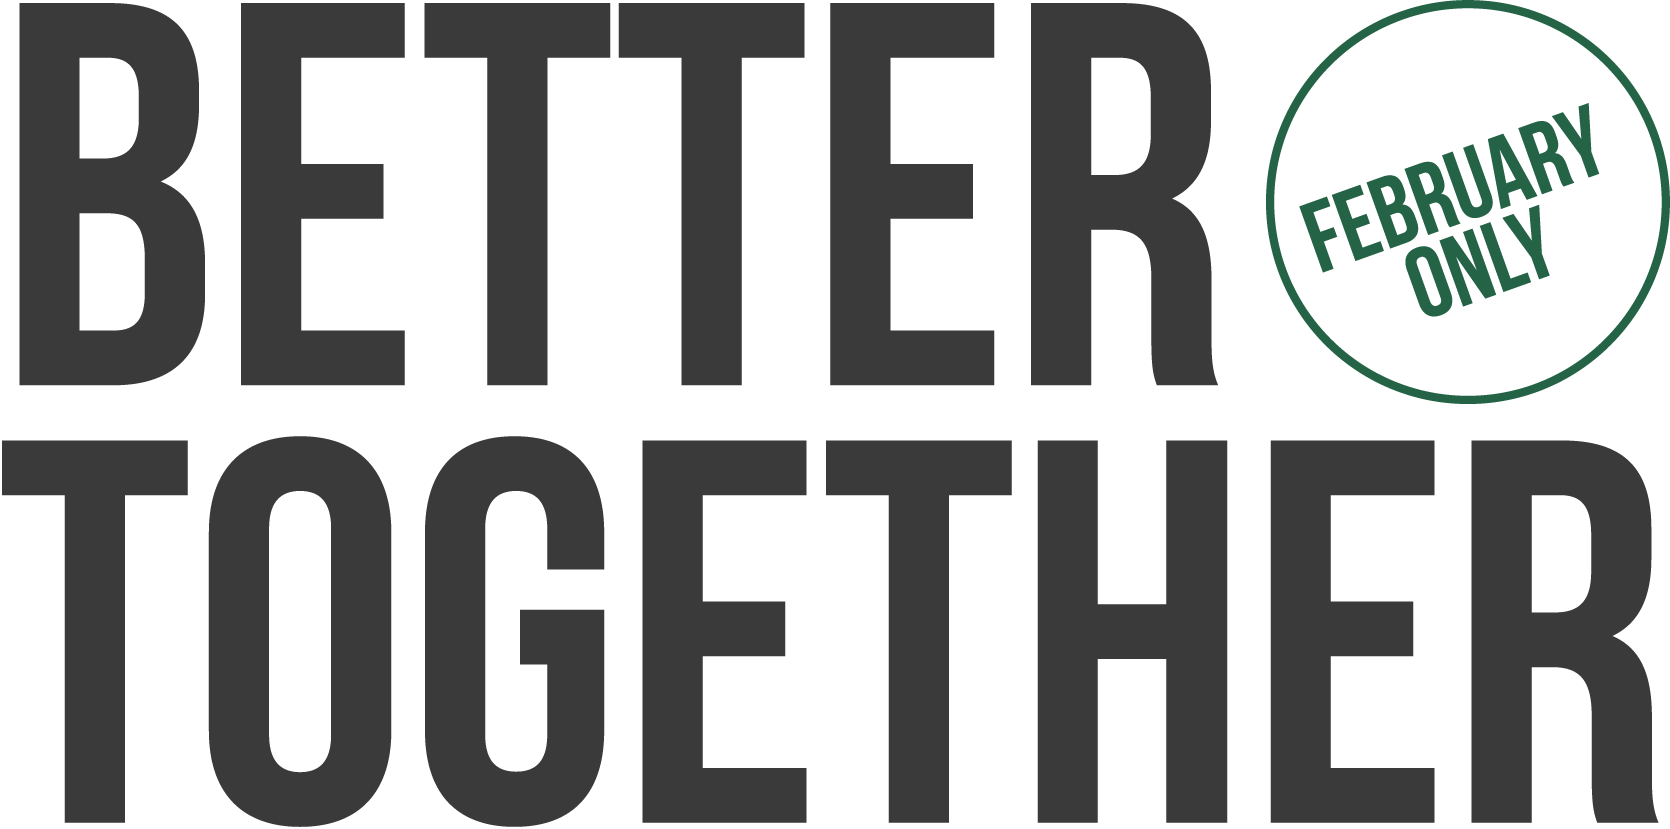 BETTER TOGETHER FEBRUARY ONLY